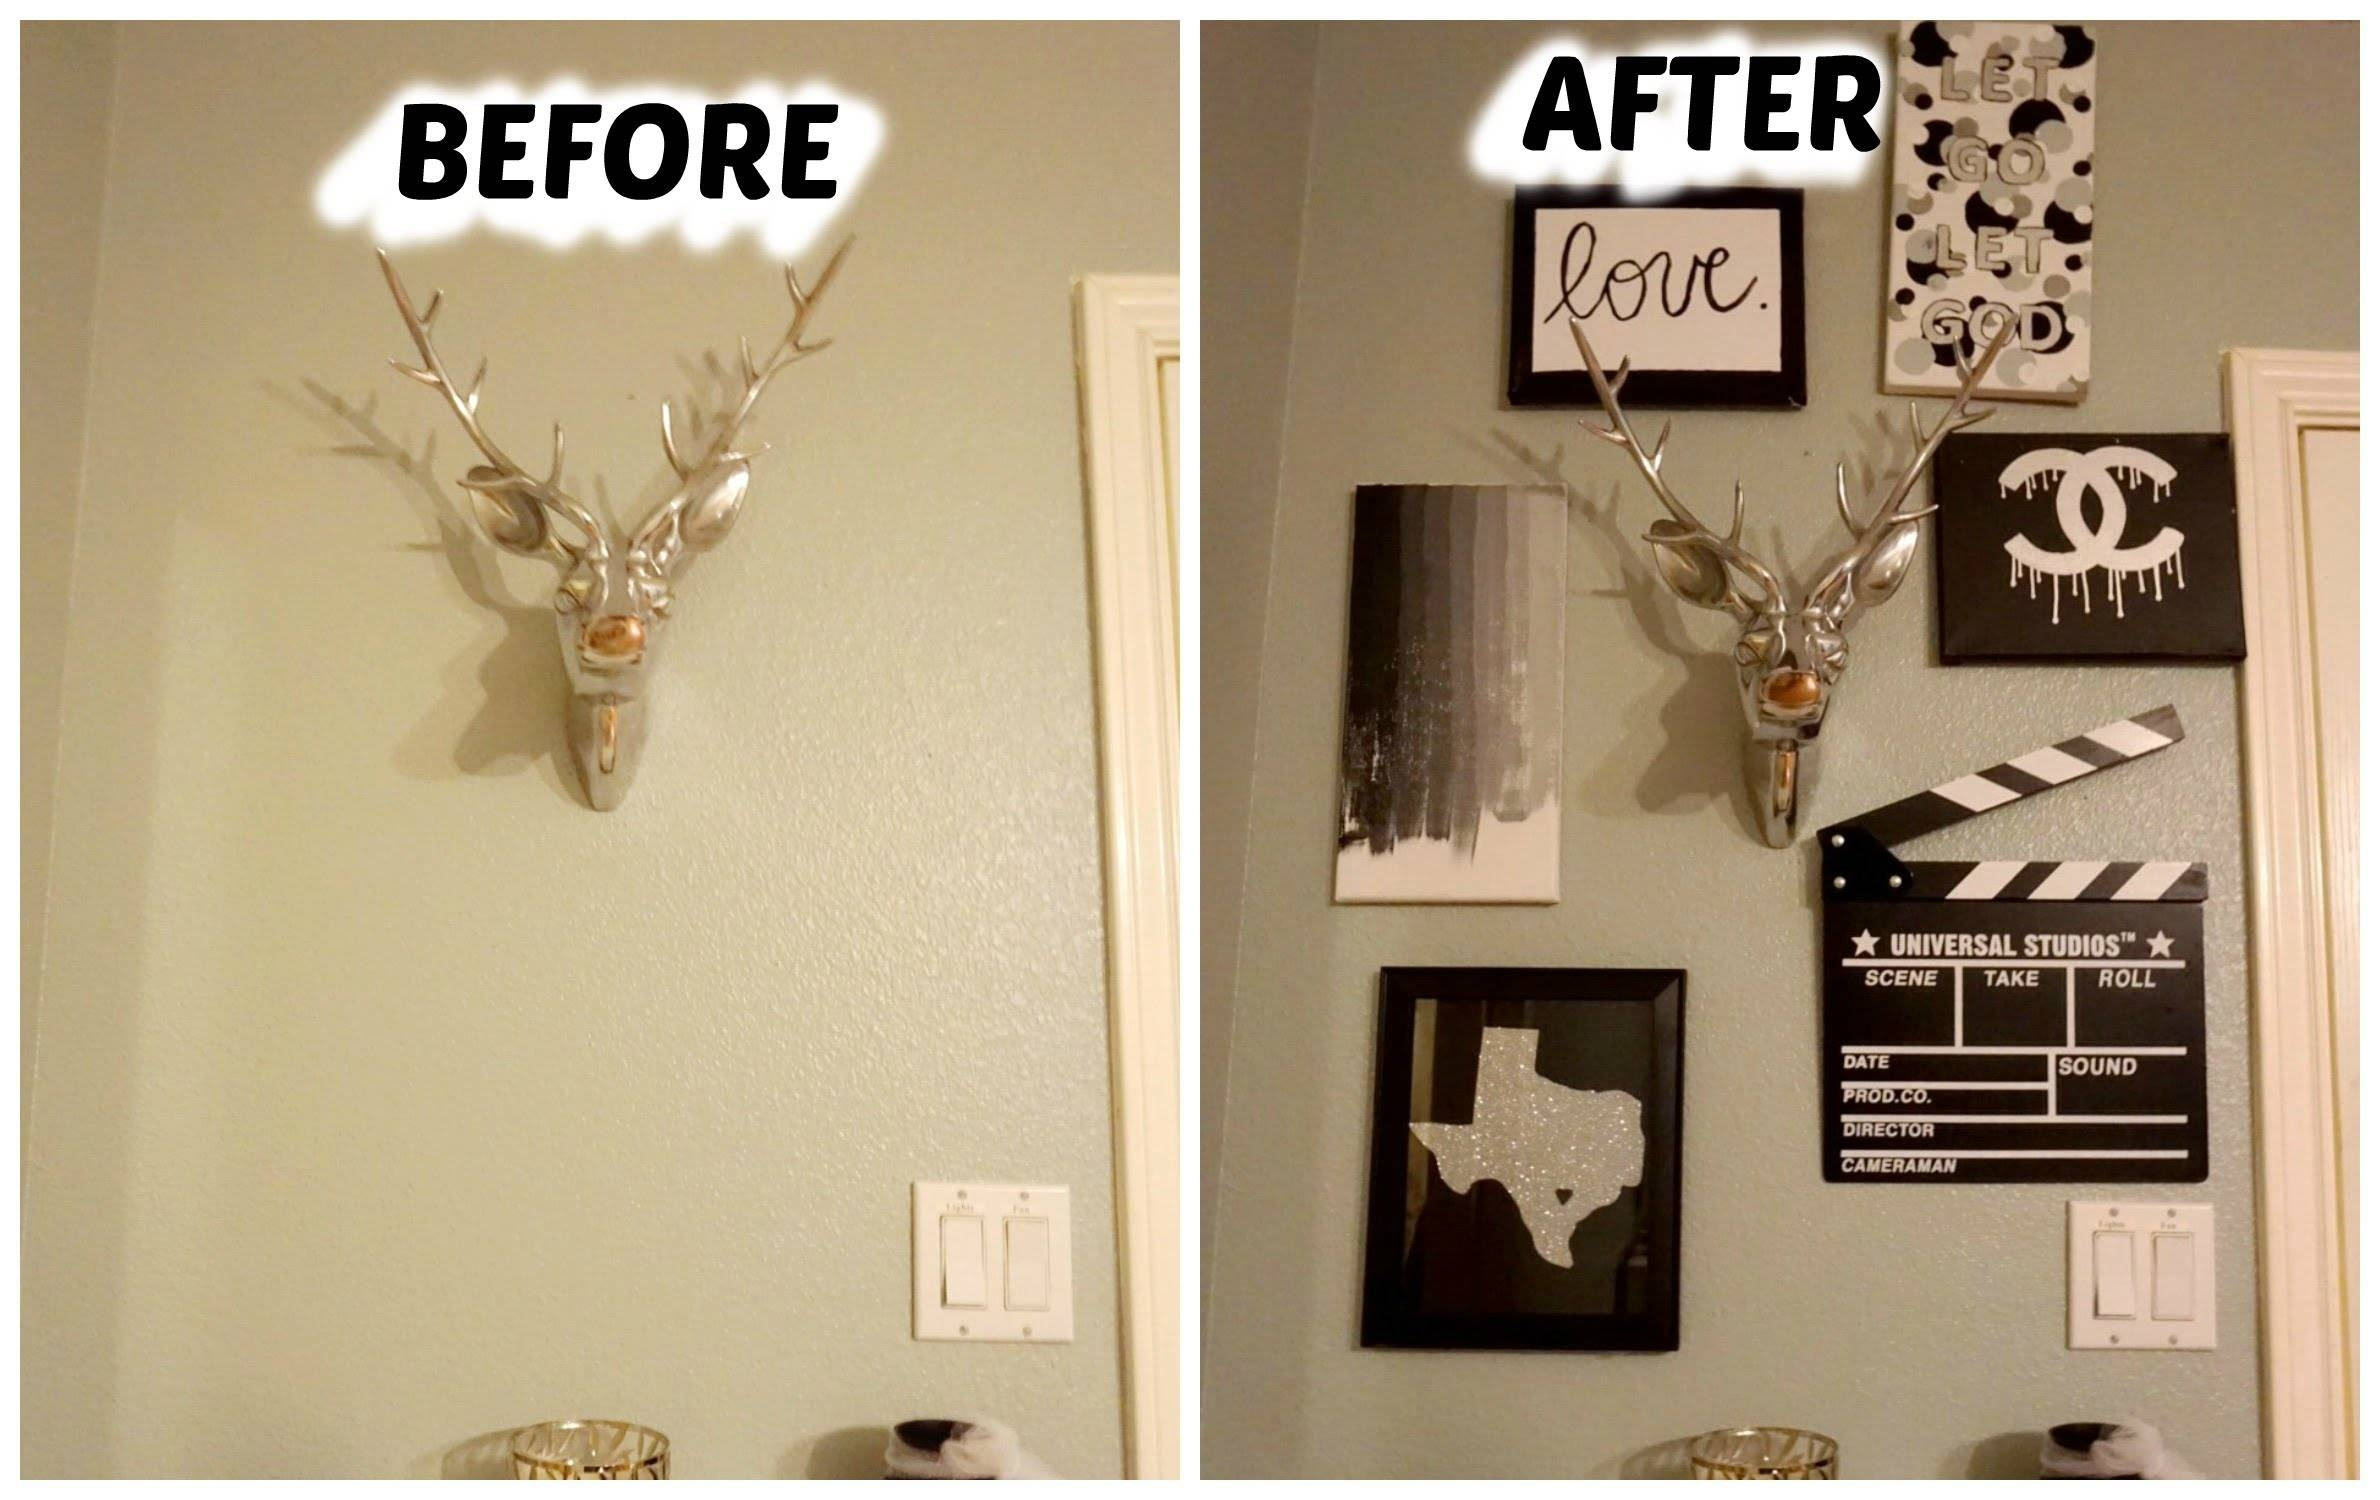 Diy Pinterest Wall Decor – Youtube Pertaining To Most Current Pinterest Diy Wall Art (View 19 of 25)